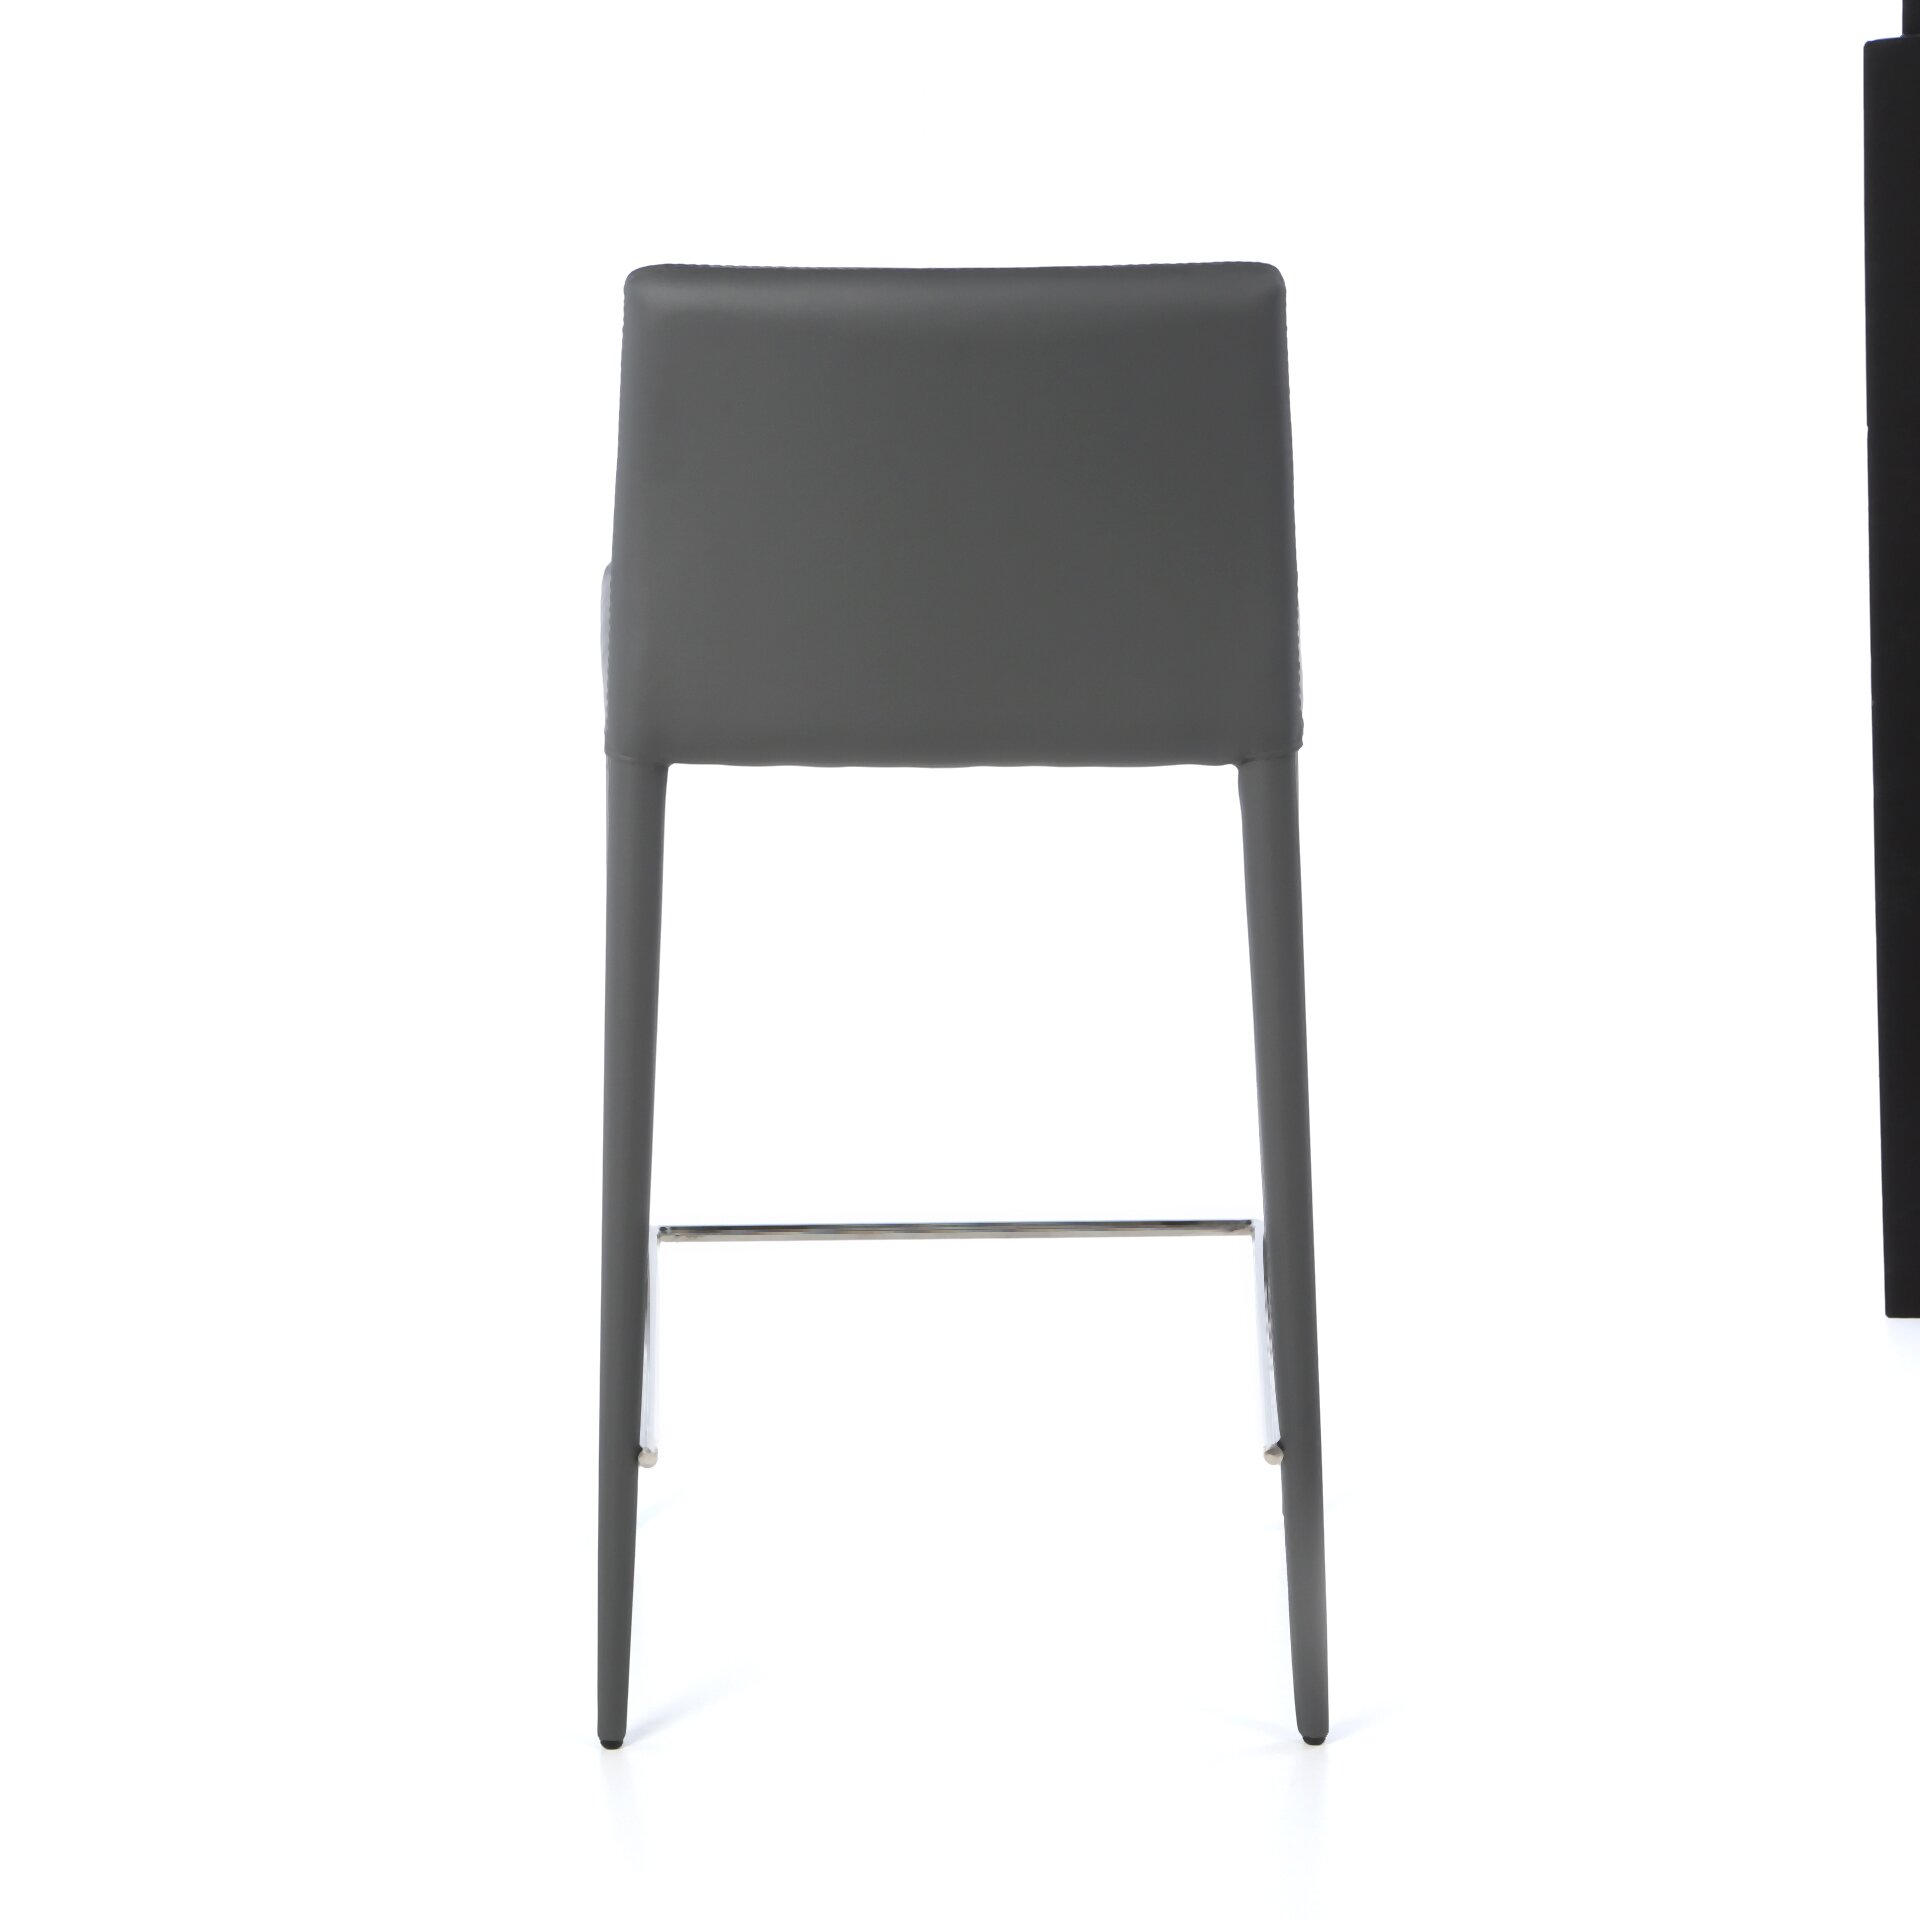 Mobital Zeno 26quot Bar Stool amp Reviews Wayfairca : Zeno2BCounter2BStool from www.wayfair.ca size 1920 x 1920 jpeg 100kB